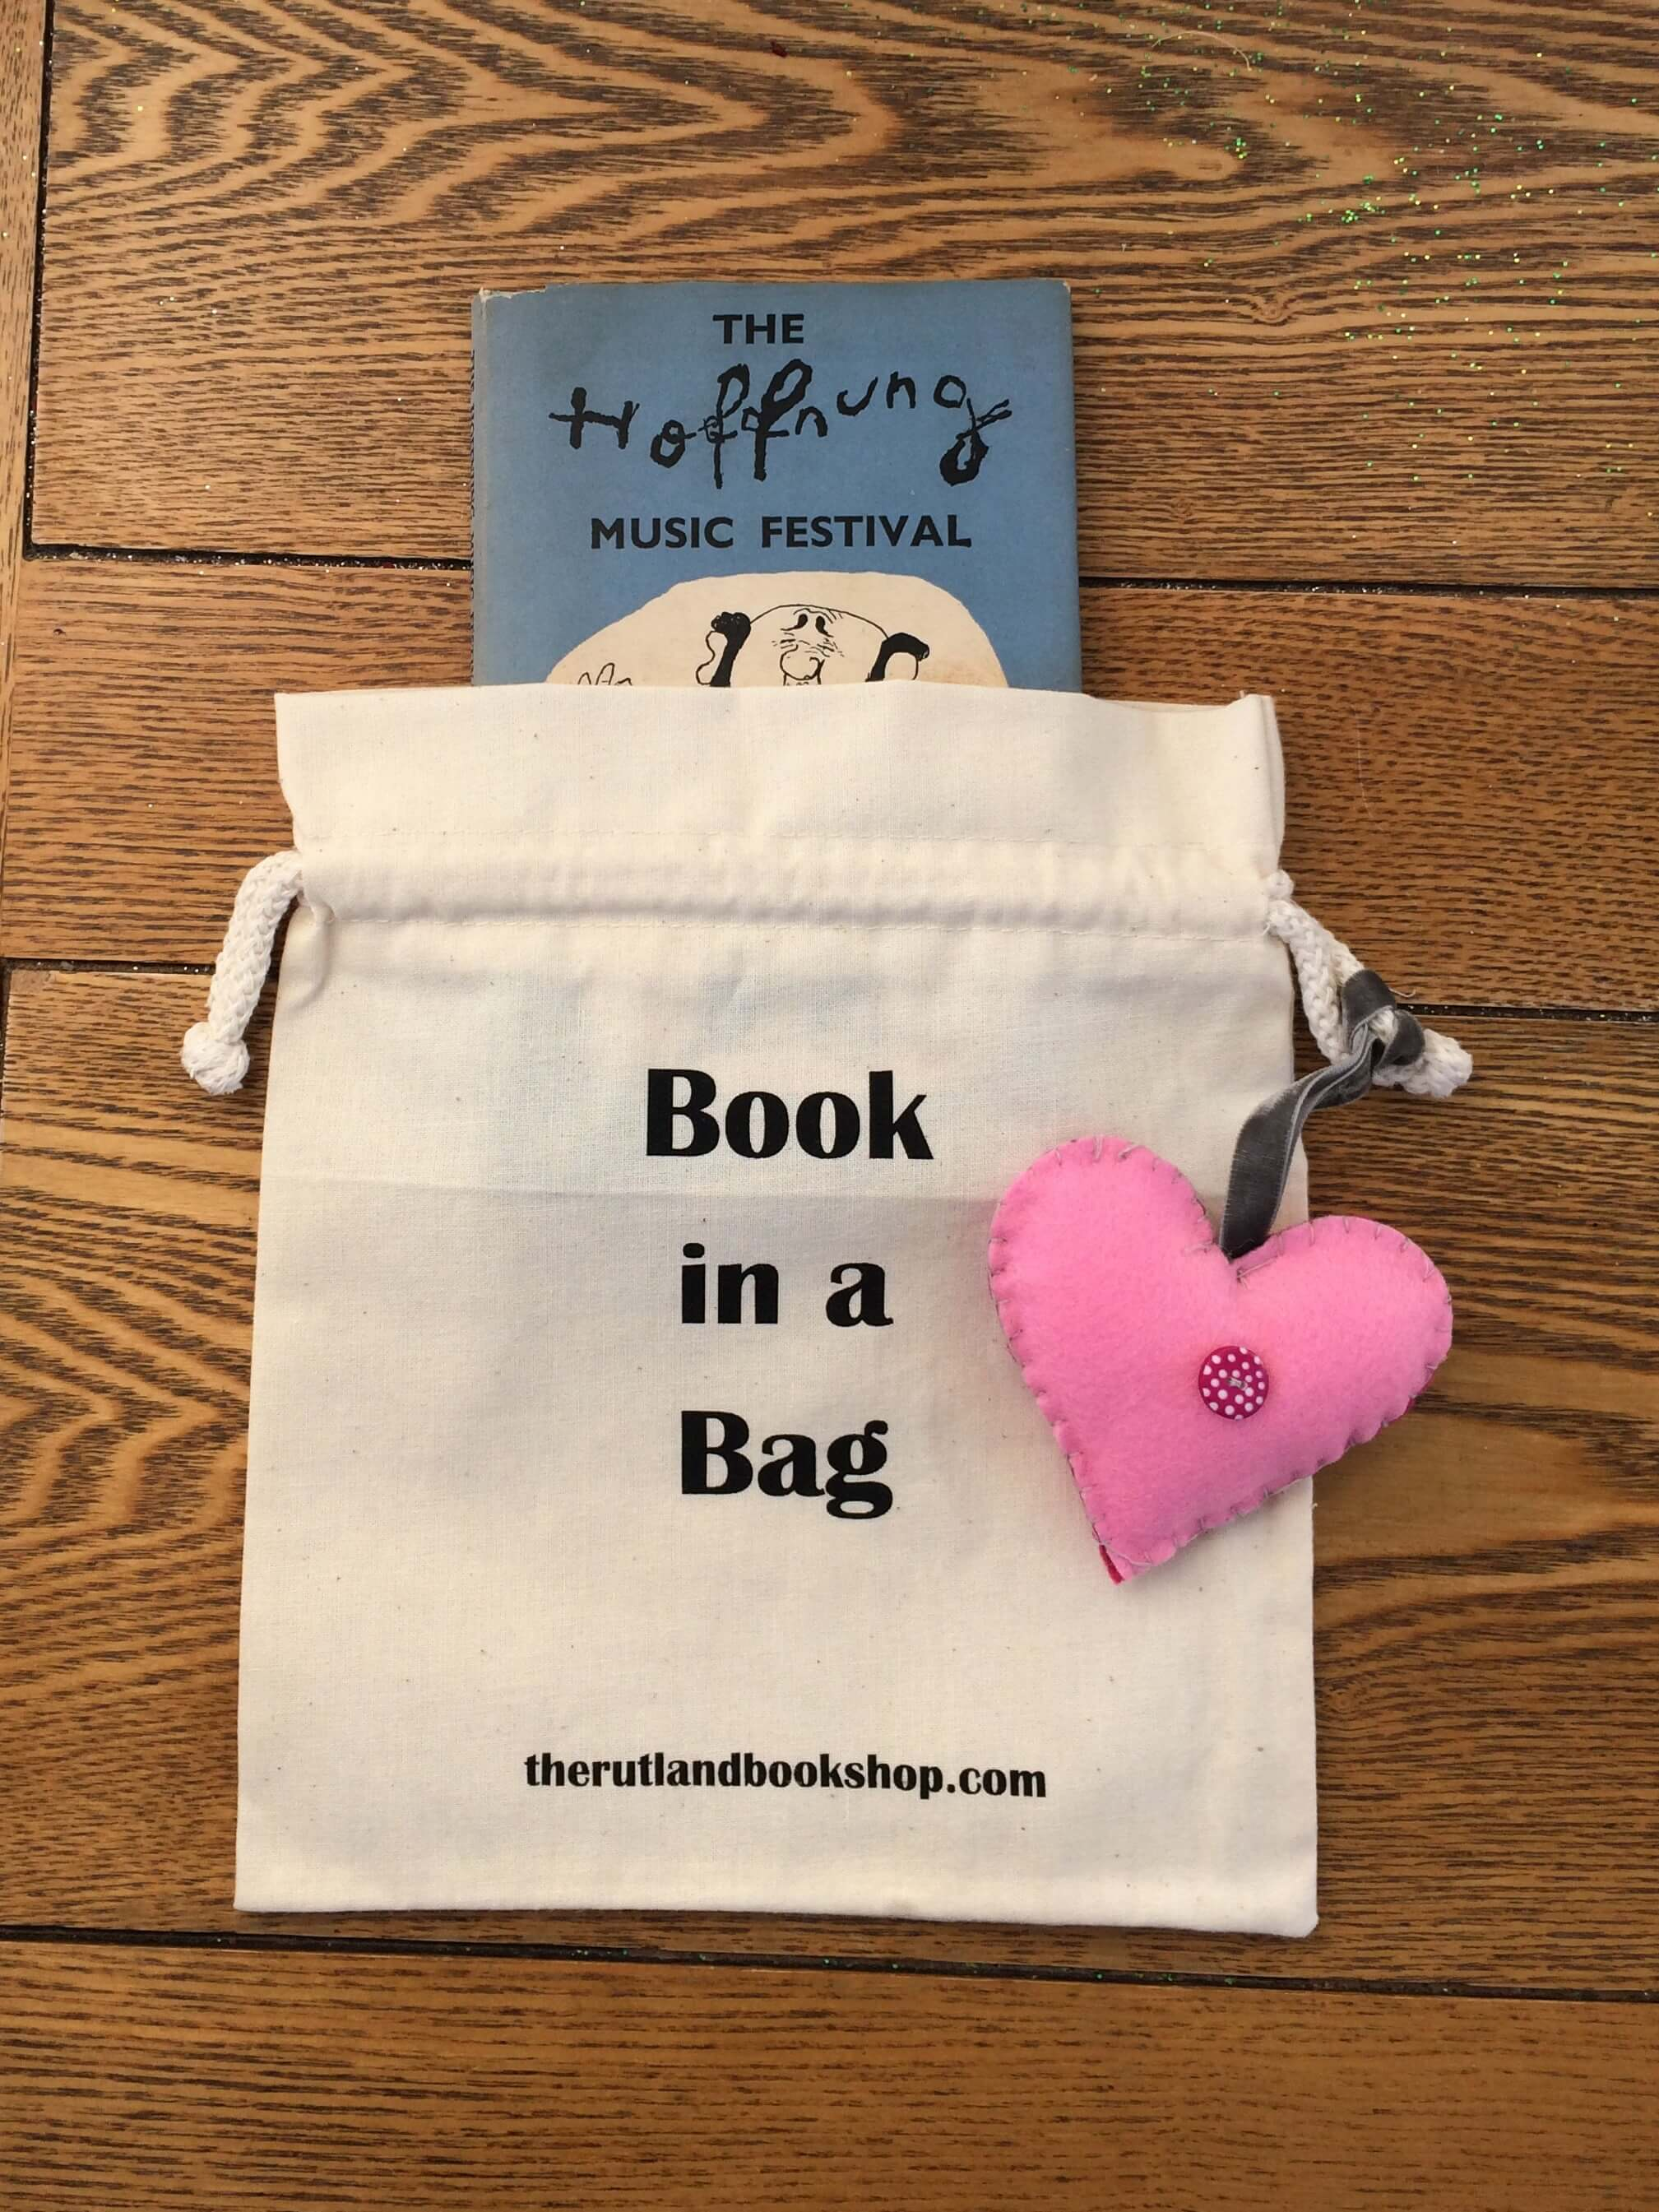 Hoffnung Music Festival (Book In A Bag)